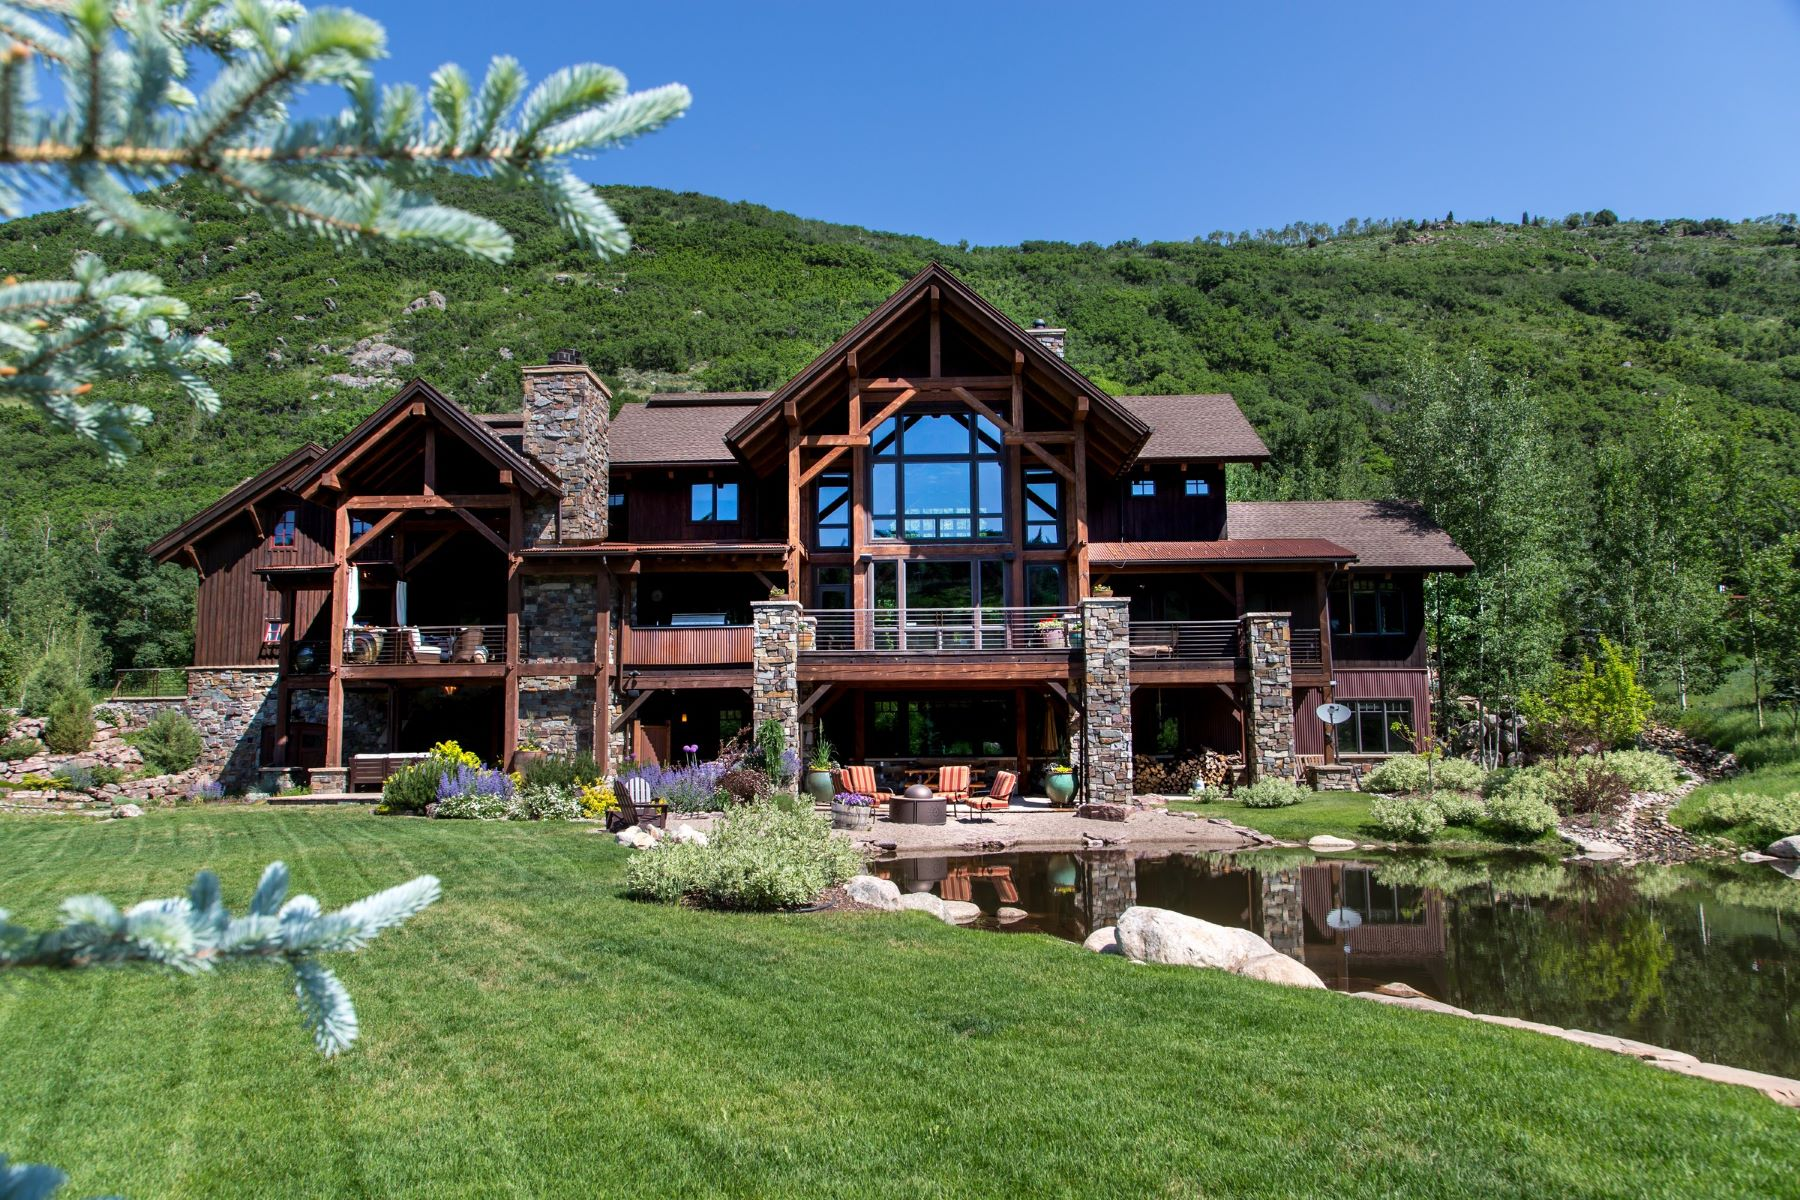 Maison unifamiliale pour l Vente à Elkins Meadow Masterpiece 2890 Bucks Path Steamboat Springs, Colorado, 80487 États-Unis